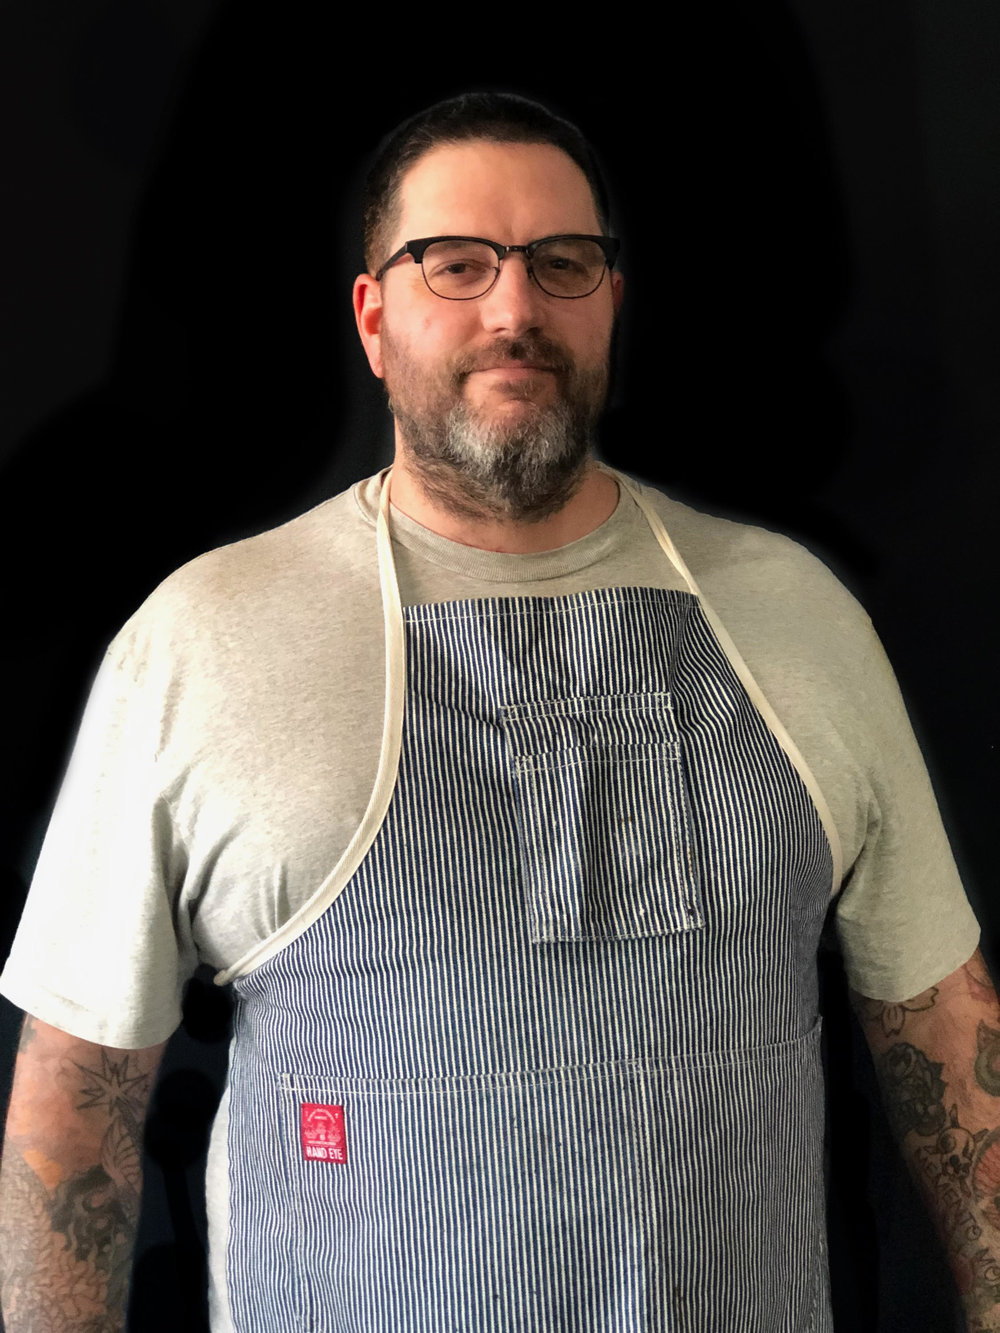 KYLE GROVER     DULUTH MN & BAYFIELD WI     Kyle Grover's Hours:  Duluth: T, W, TH 10am-4pm Bayfield: F 10am-8pm   DULUTH MN & BAYFIELD WI -  Now bookings for April. Please visit our booking page.